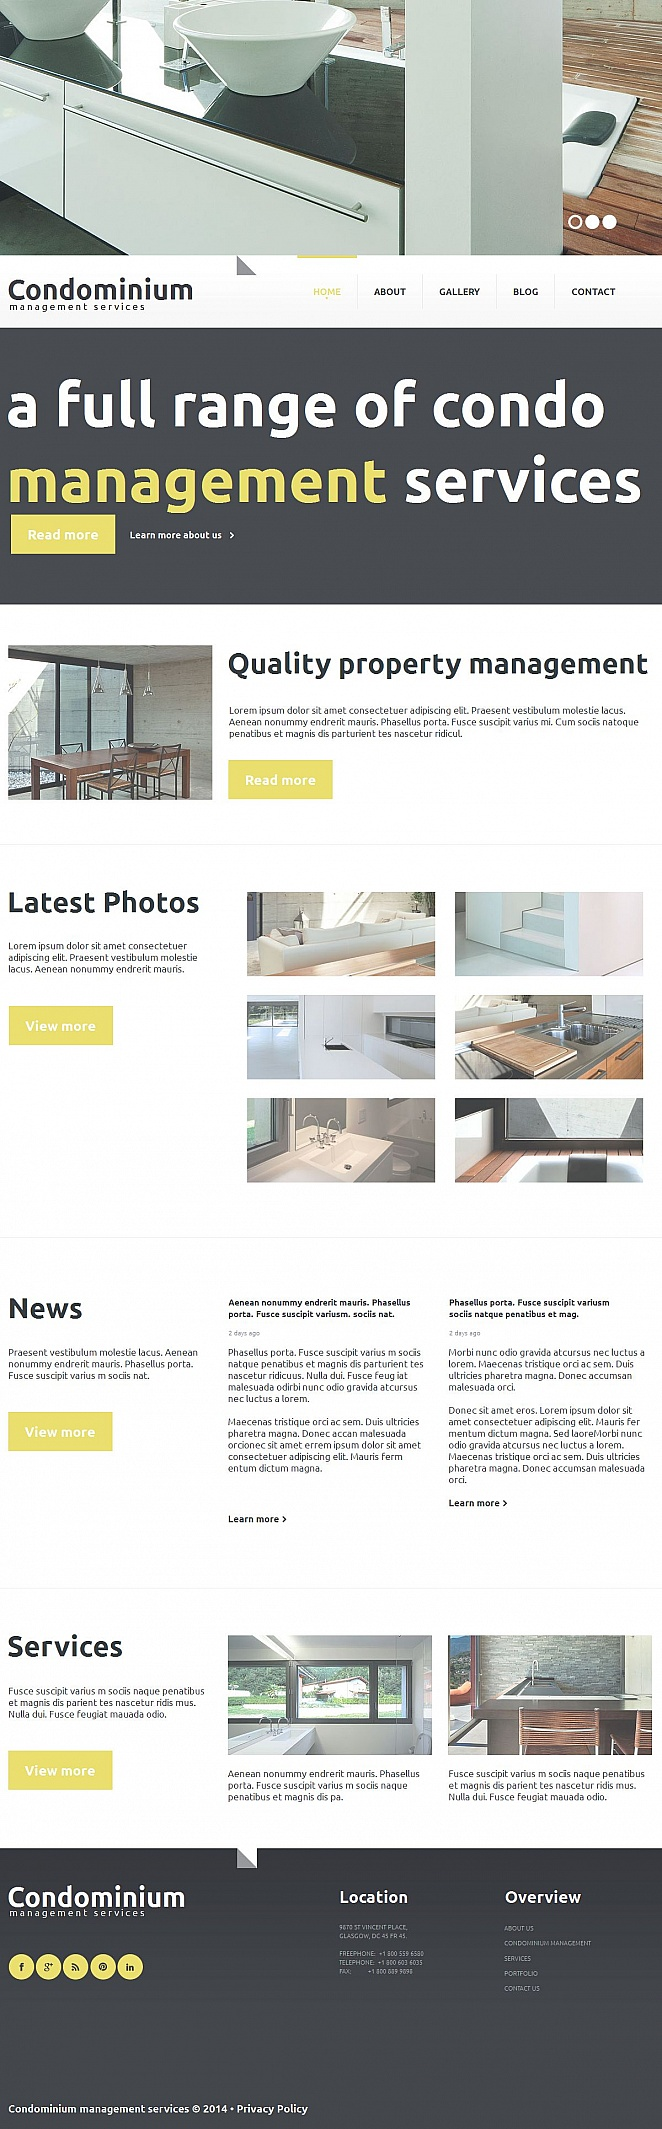 Real Estate Web Template with Header Slideshow - image